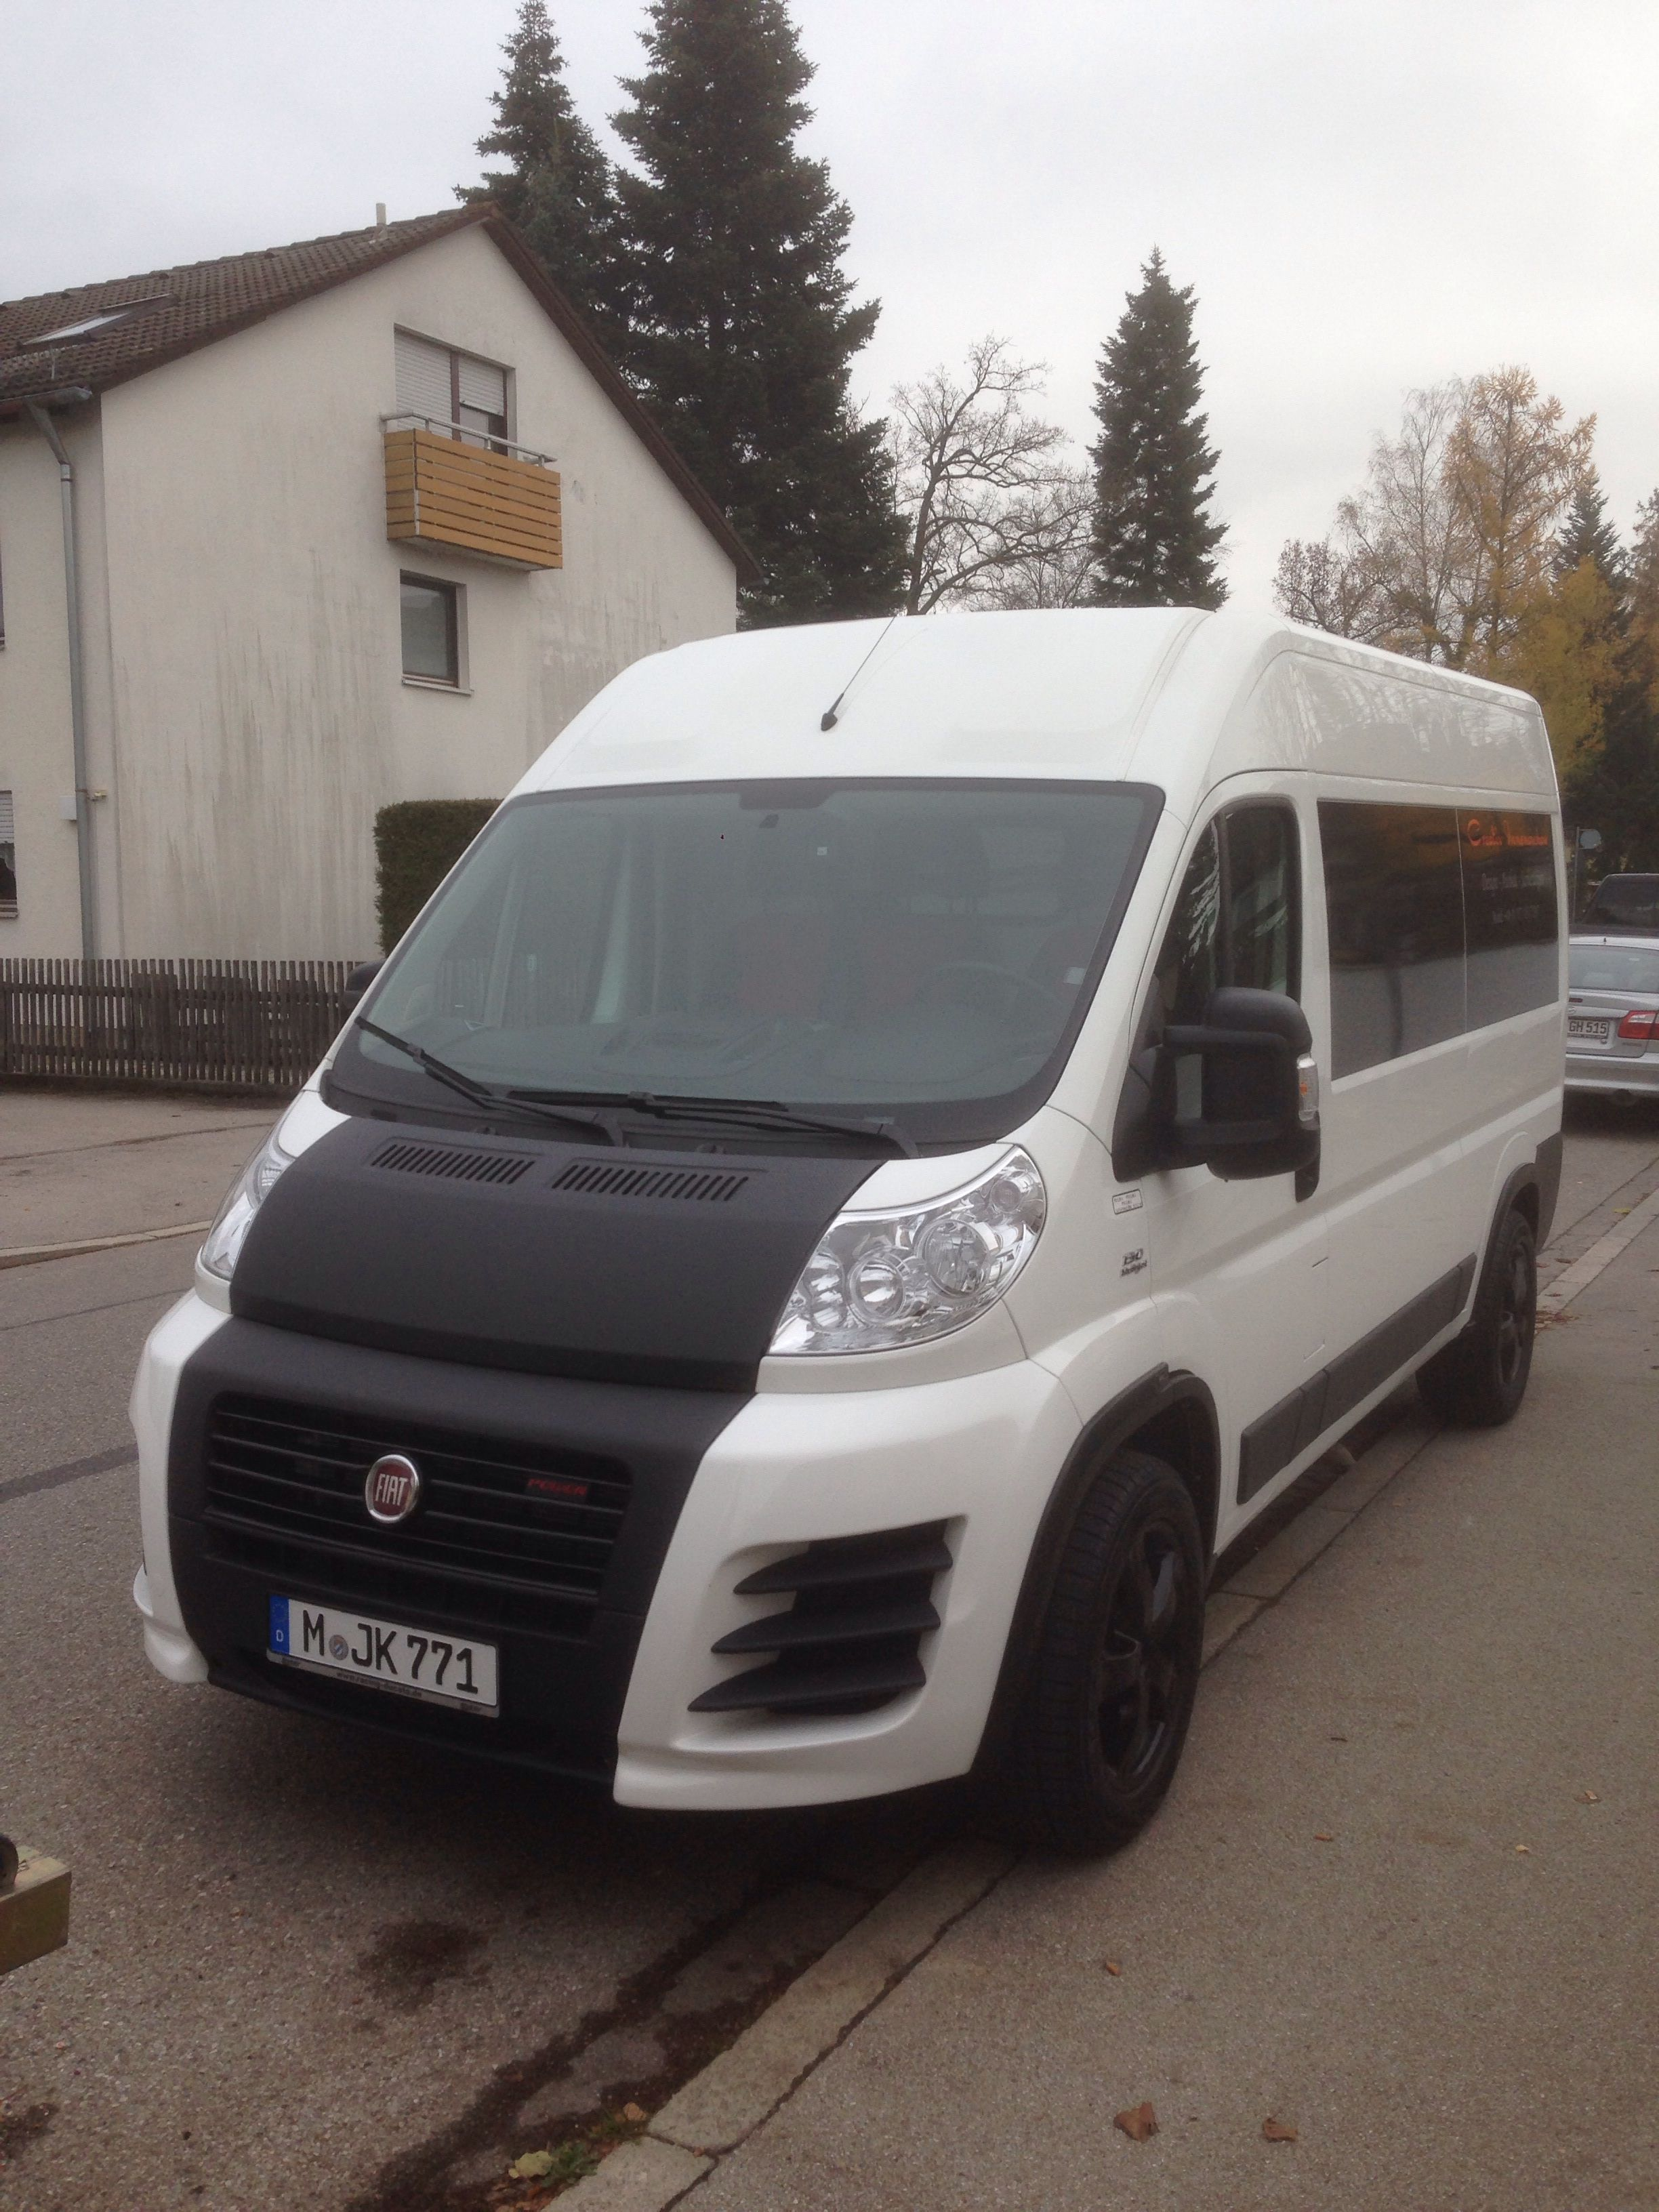 fiat ducato ducato race vans fiat ducato motorhome. Black Bedroom Furniture Sets. Home Design Ideas